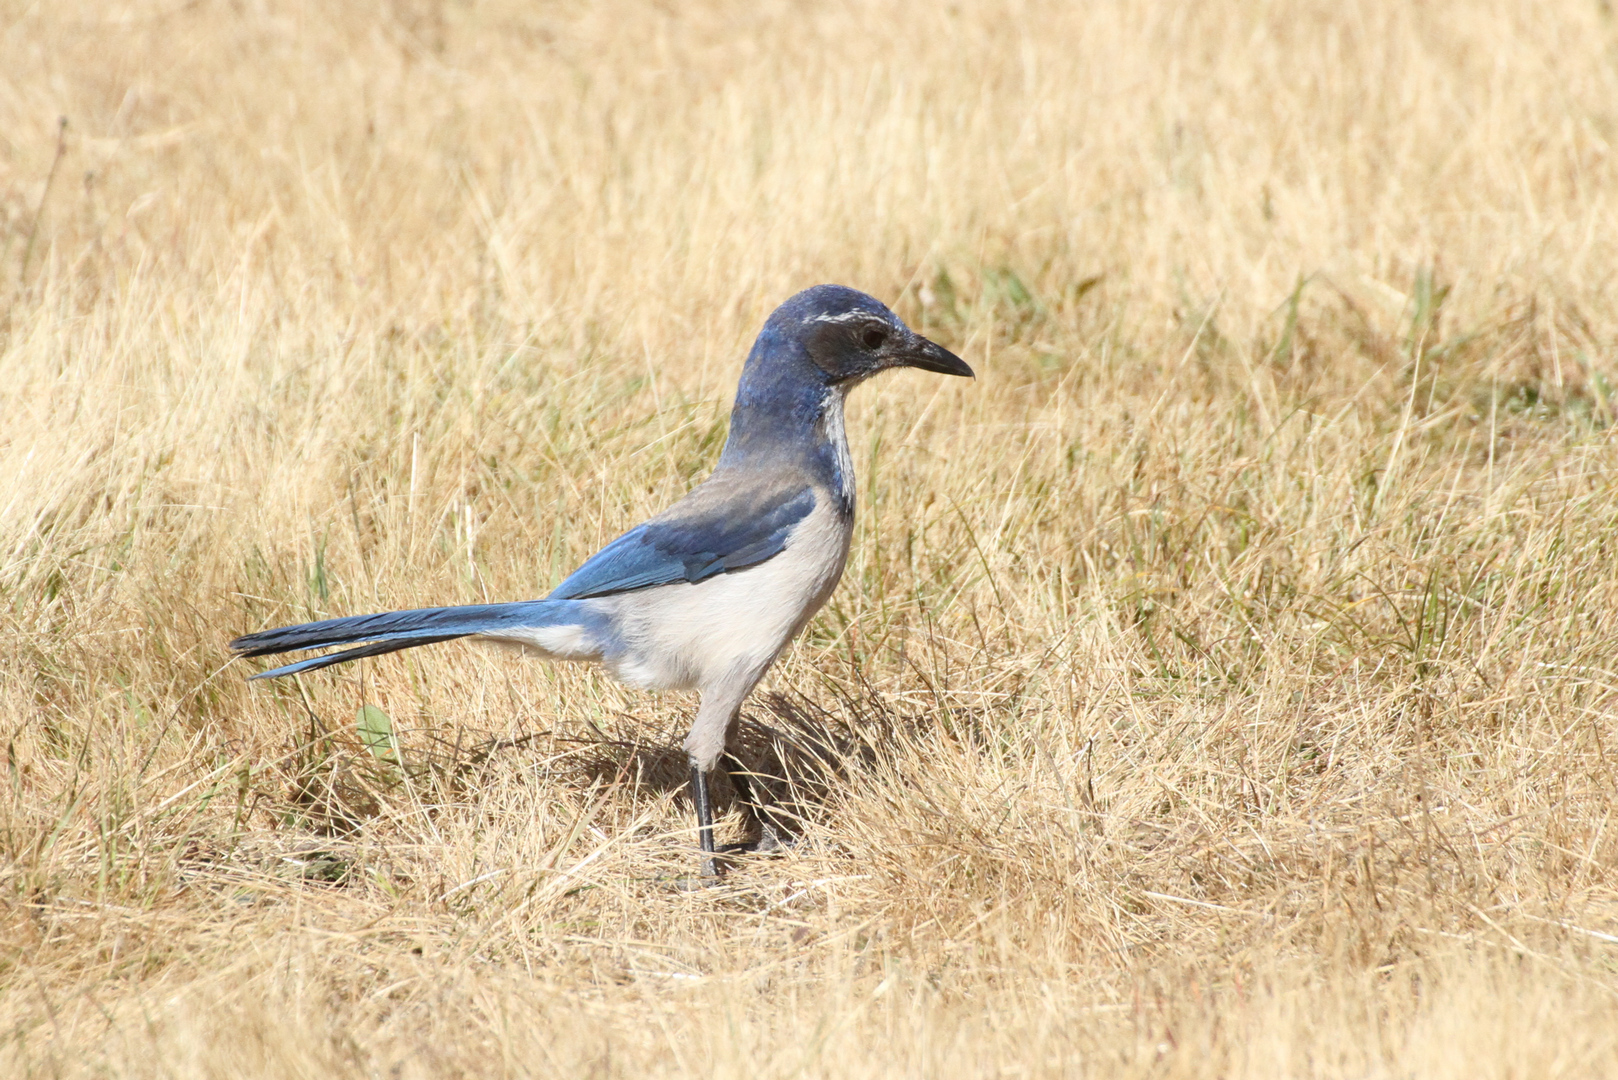 An odd-looking western scrub-jay